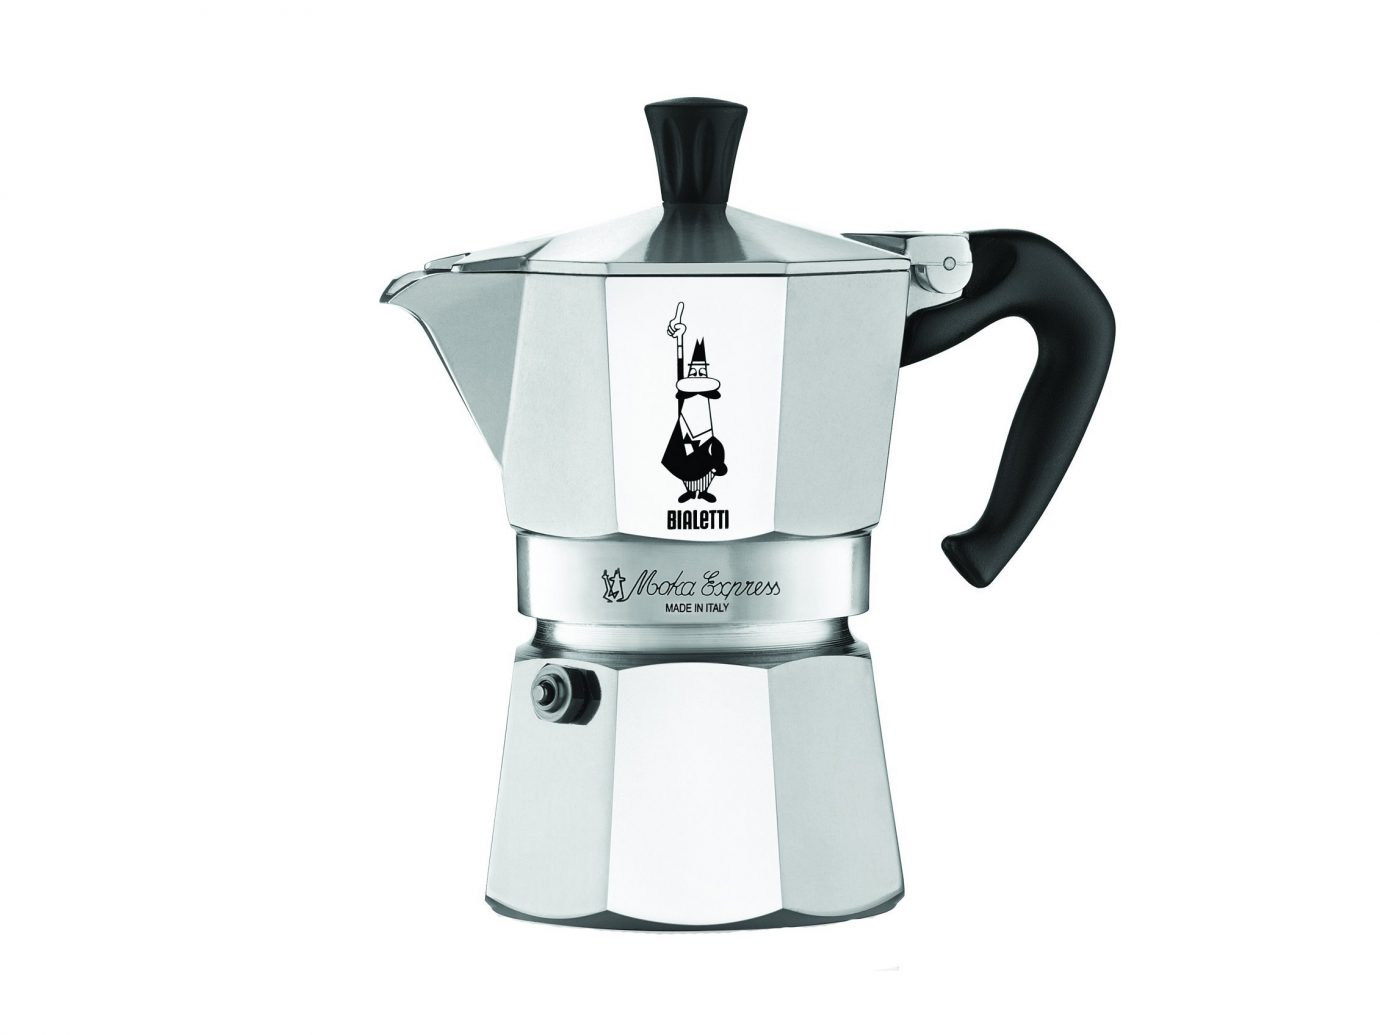 The Original Bialetti Moka Express